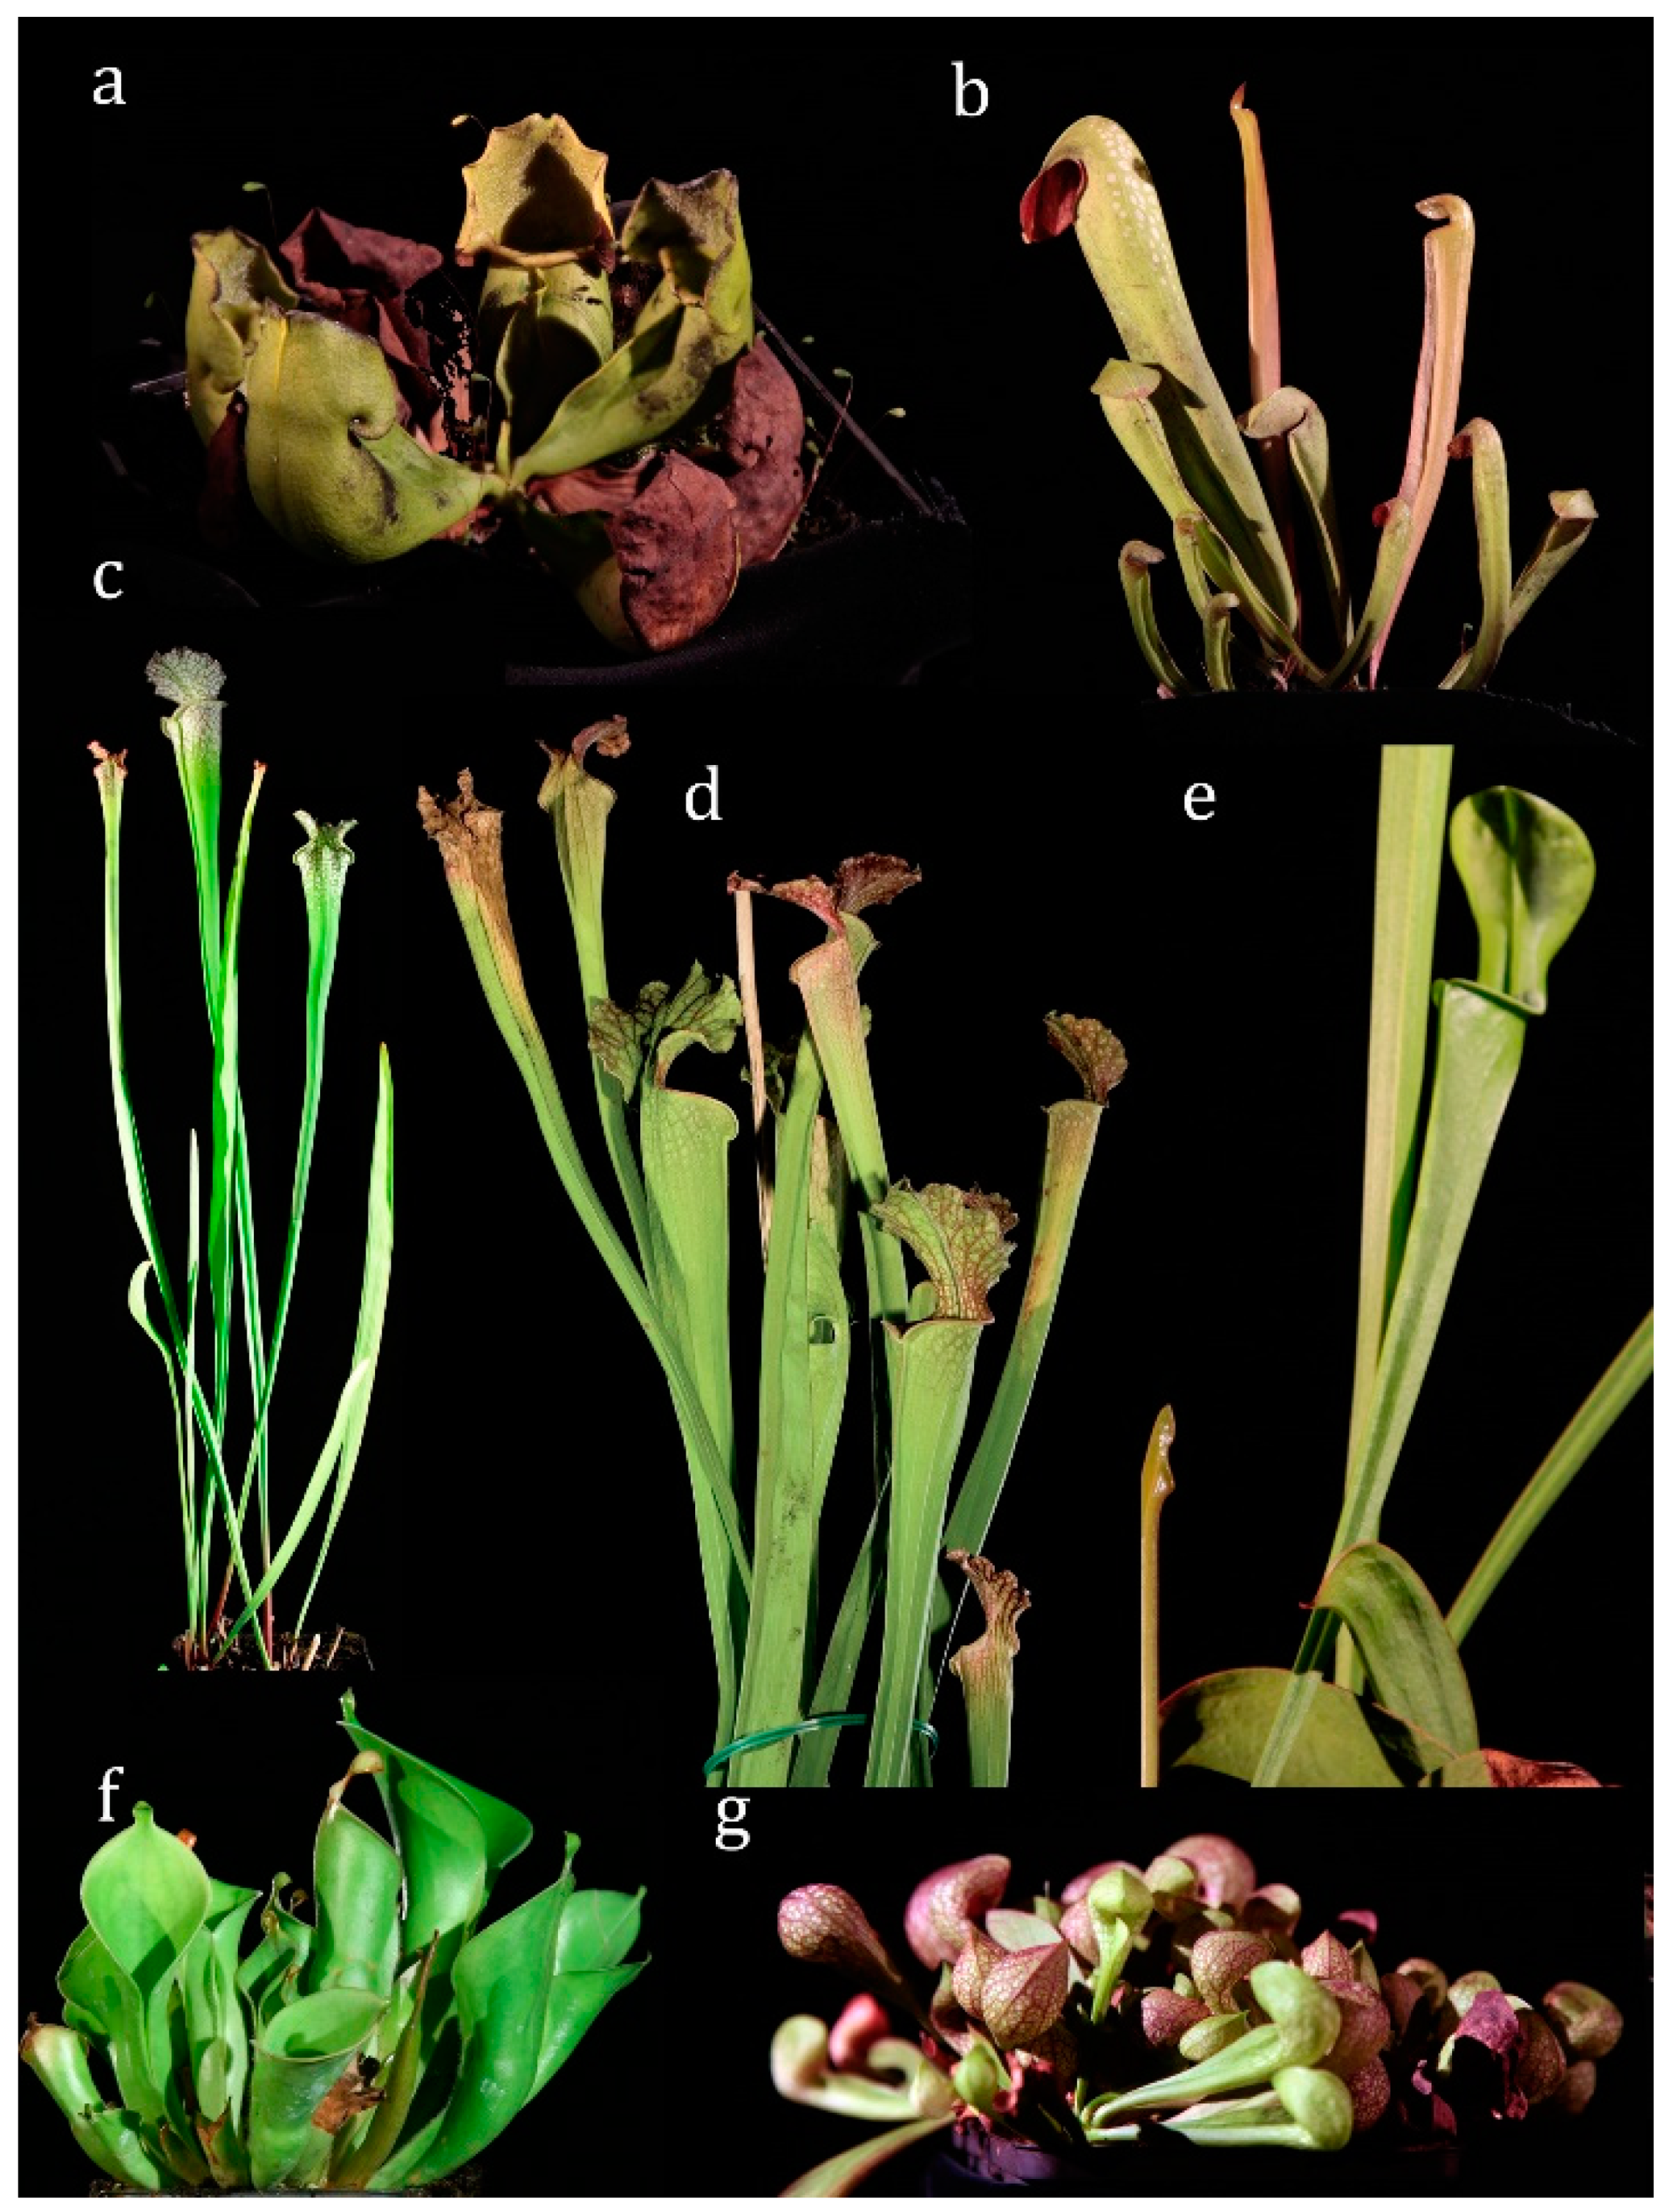 Plants Free Full Text Endocytosis And Digestion In Carnivorous Pitcher Plants Of The Family Sarraceniaceae Html